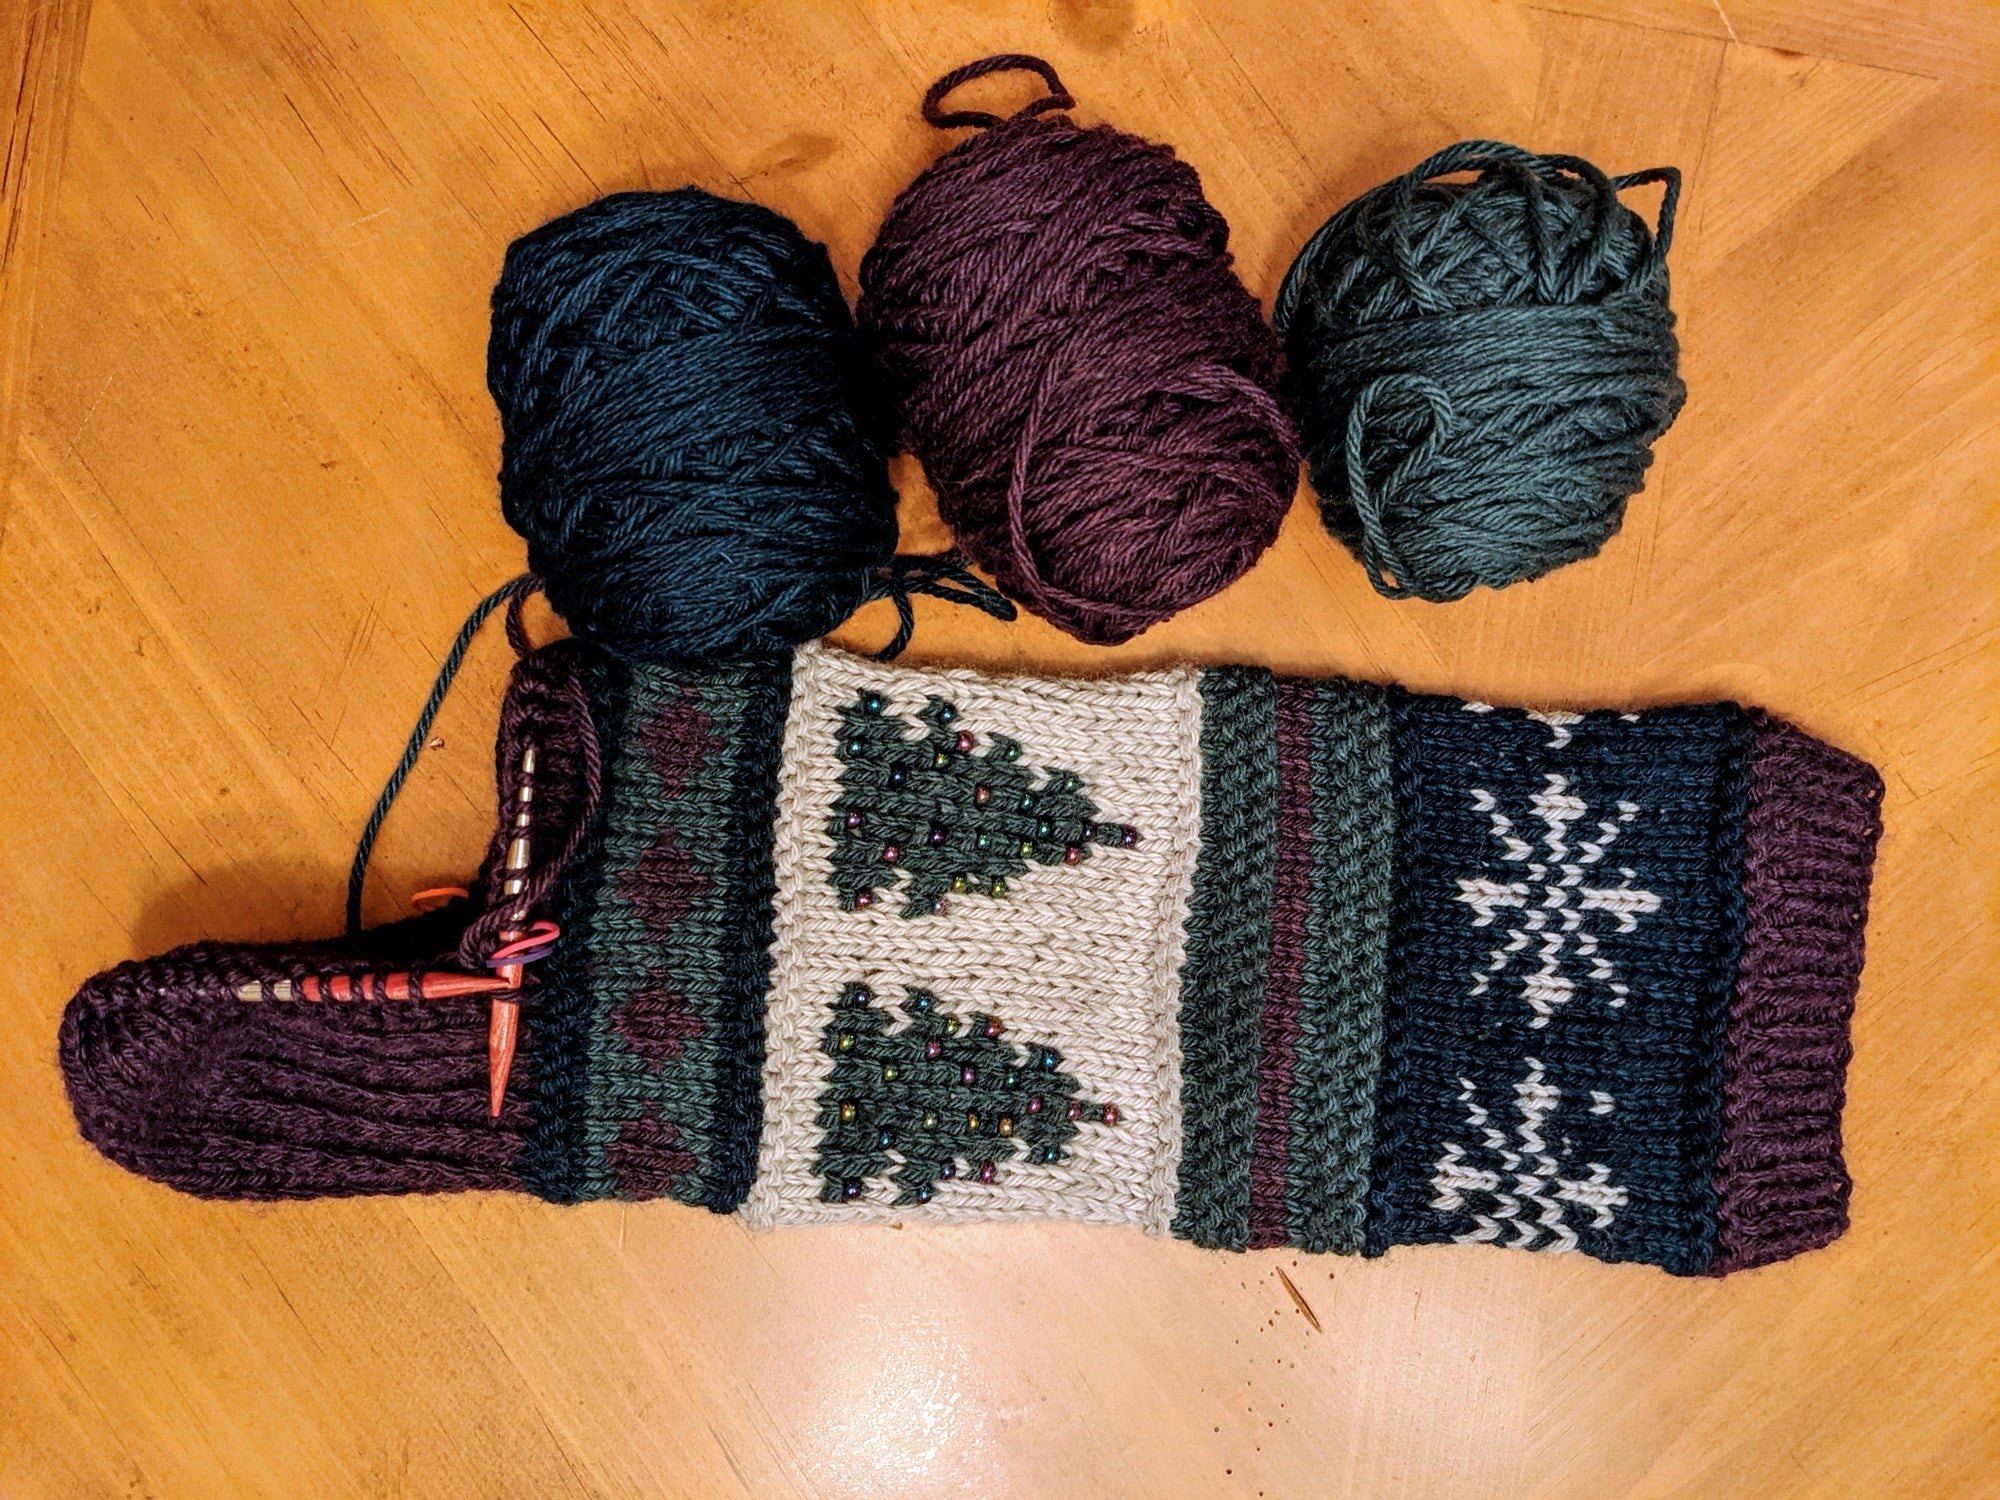 Holiday Stocking Knitting Tips for Beads & Afterthought Heels